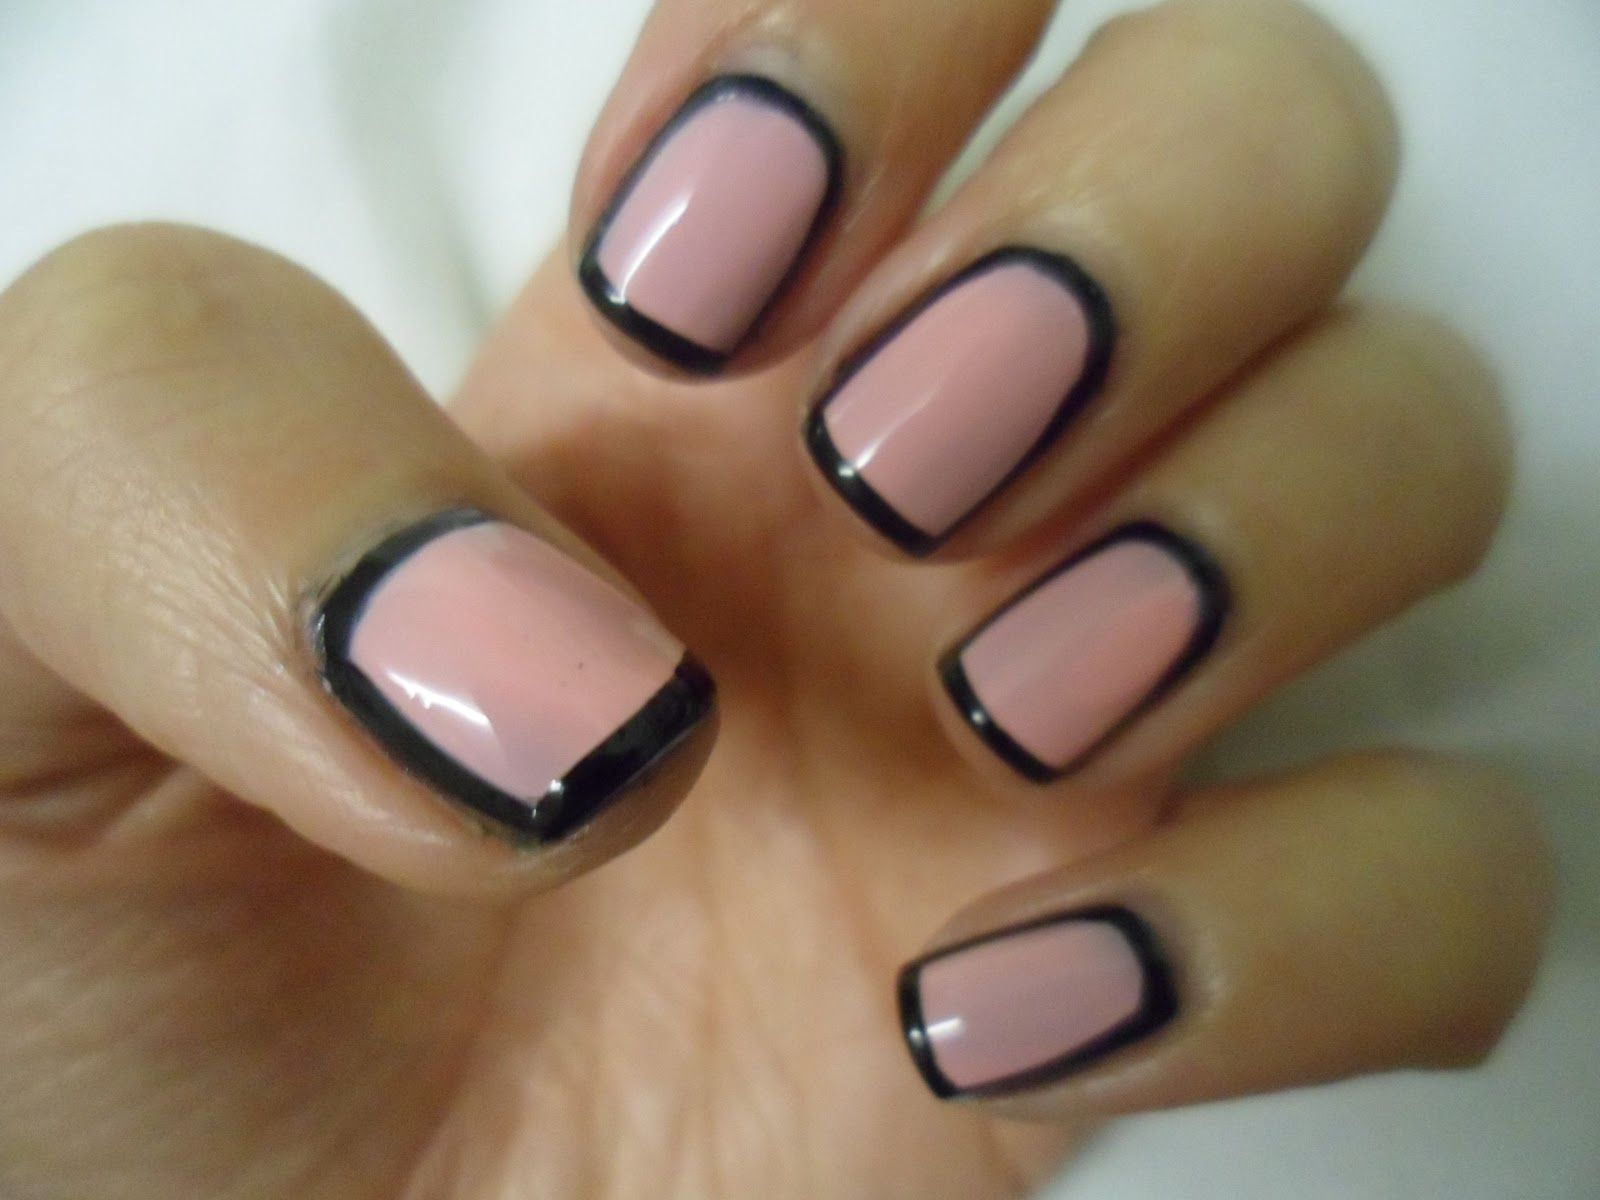 glamourtramp Marina & The Diamonds \'Primadonna\' nails ♥ | nail\'d it ...